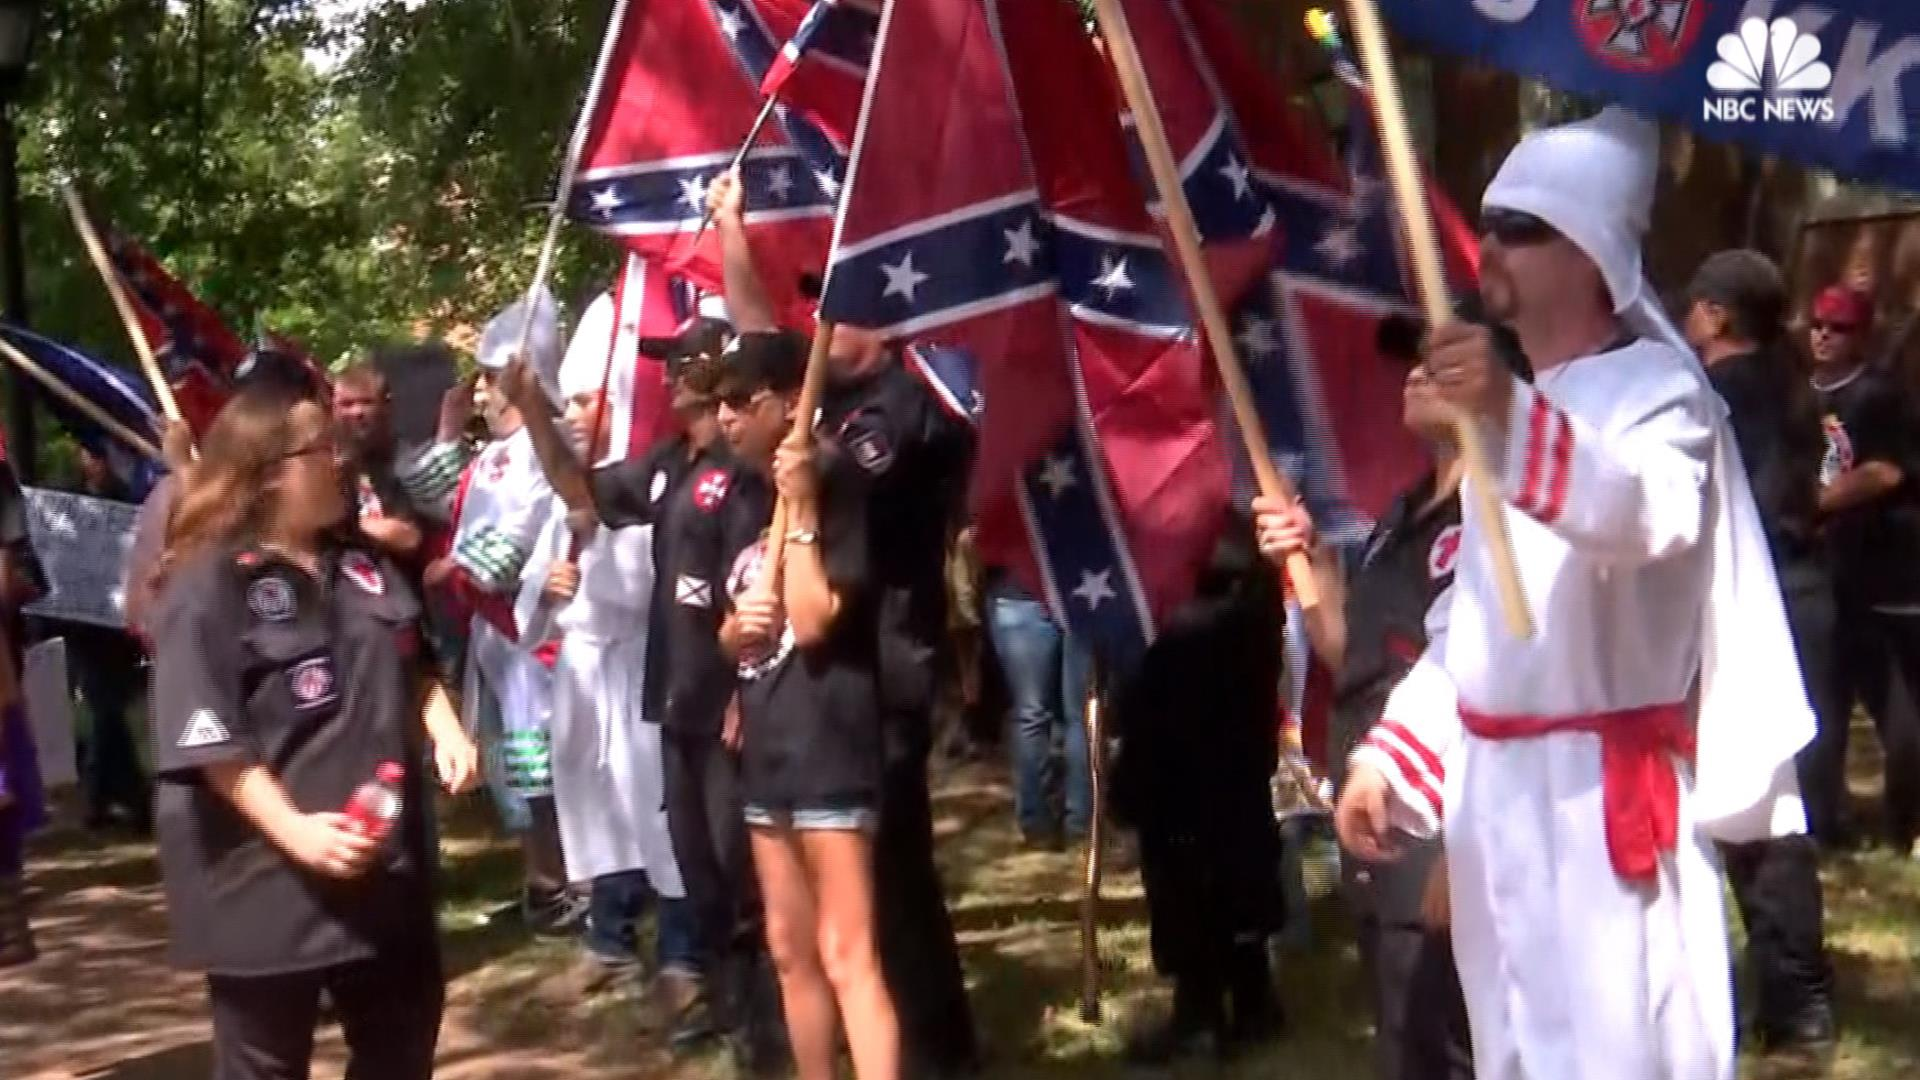 KKK Holds Rally in Charlottesville, Virginia - NBC News